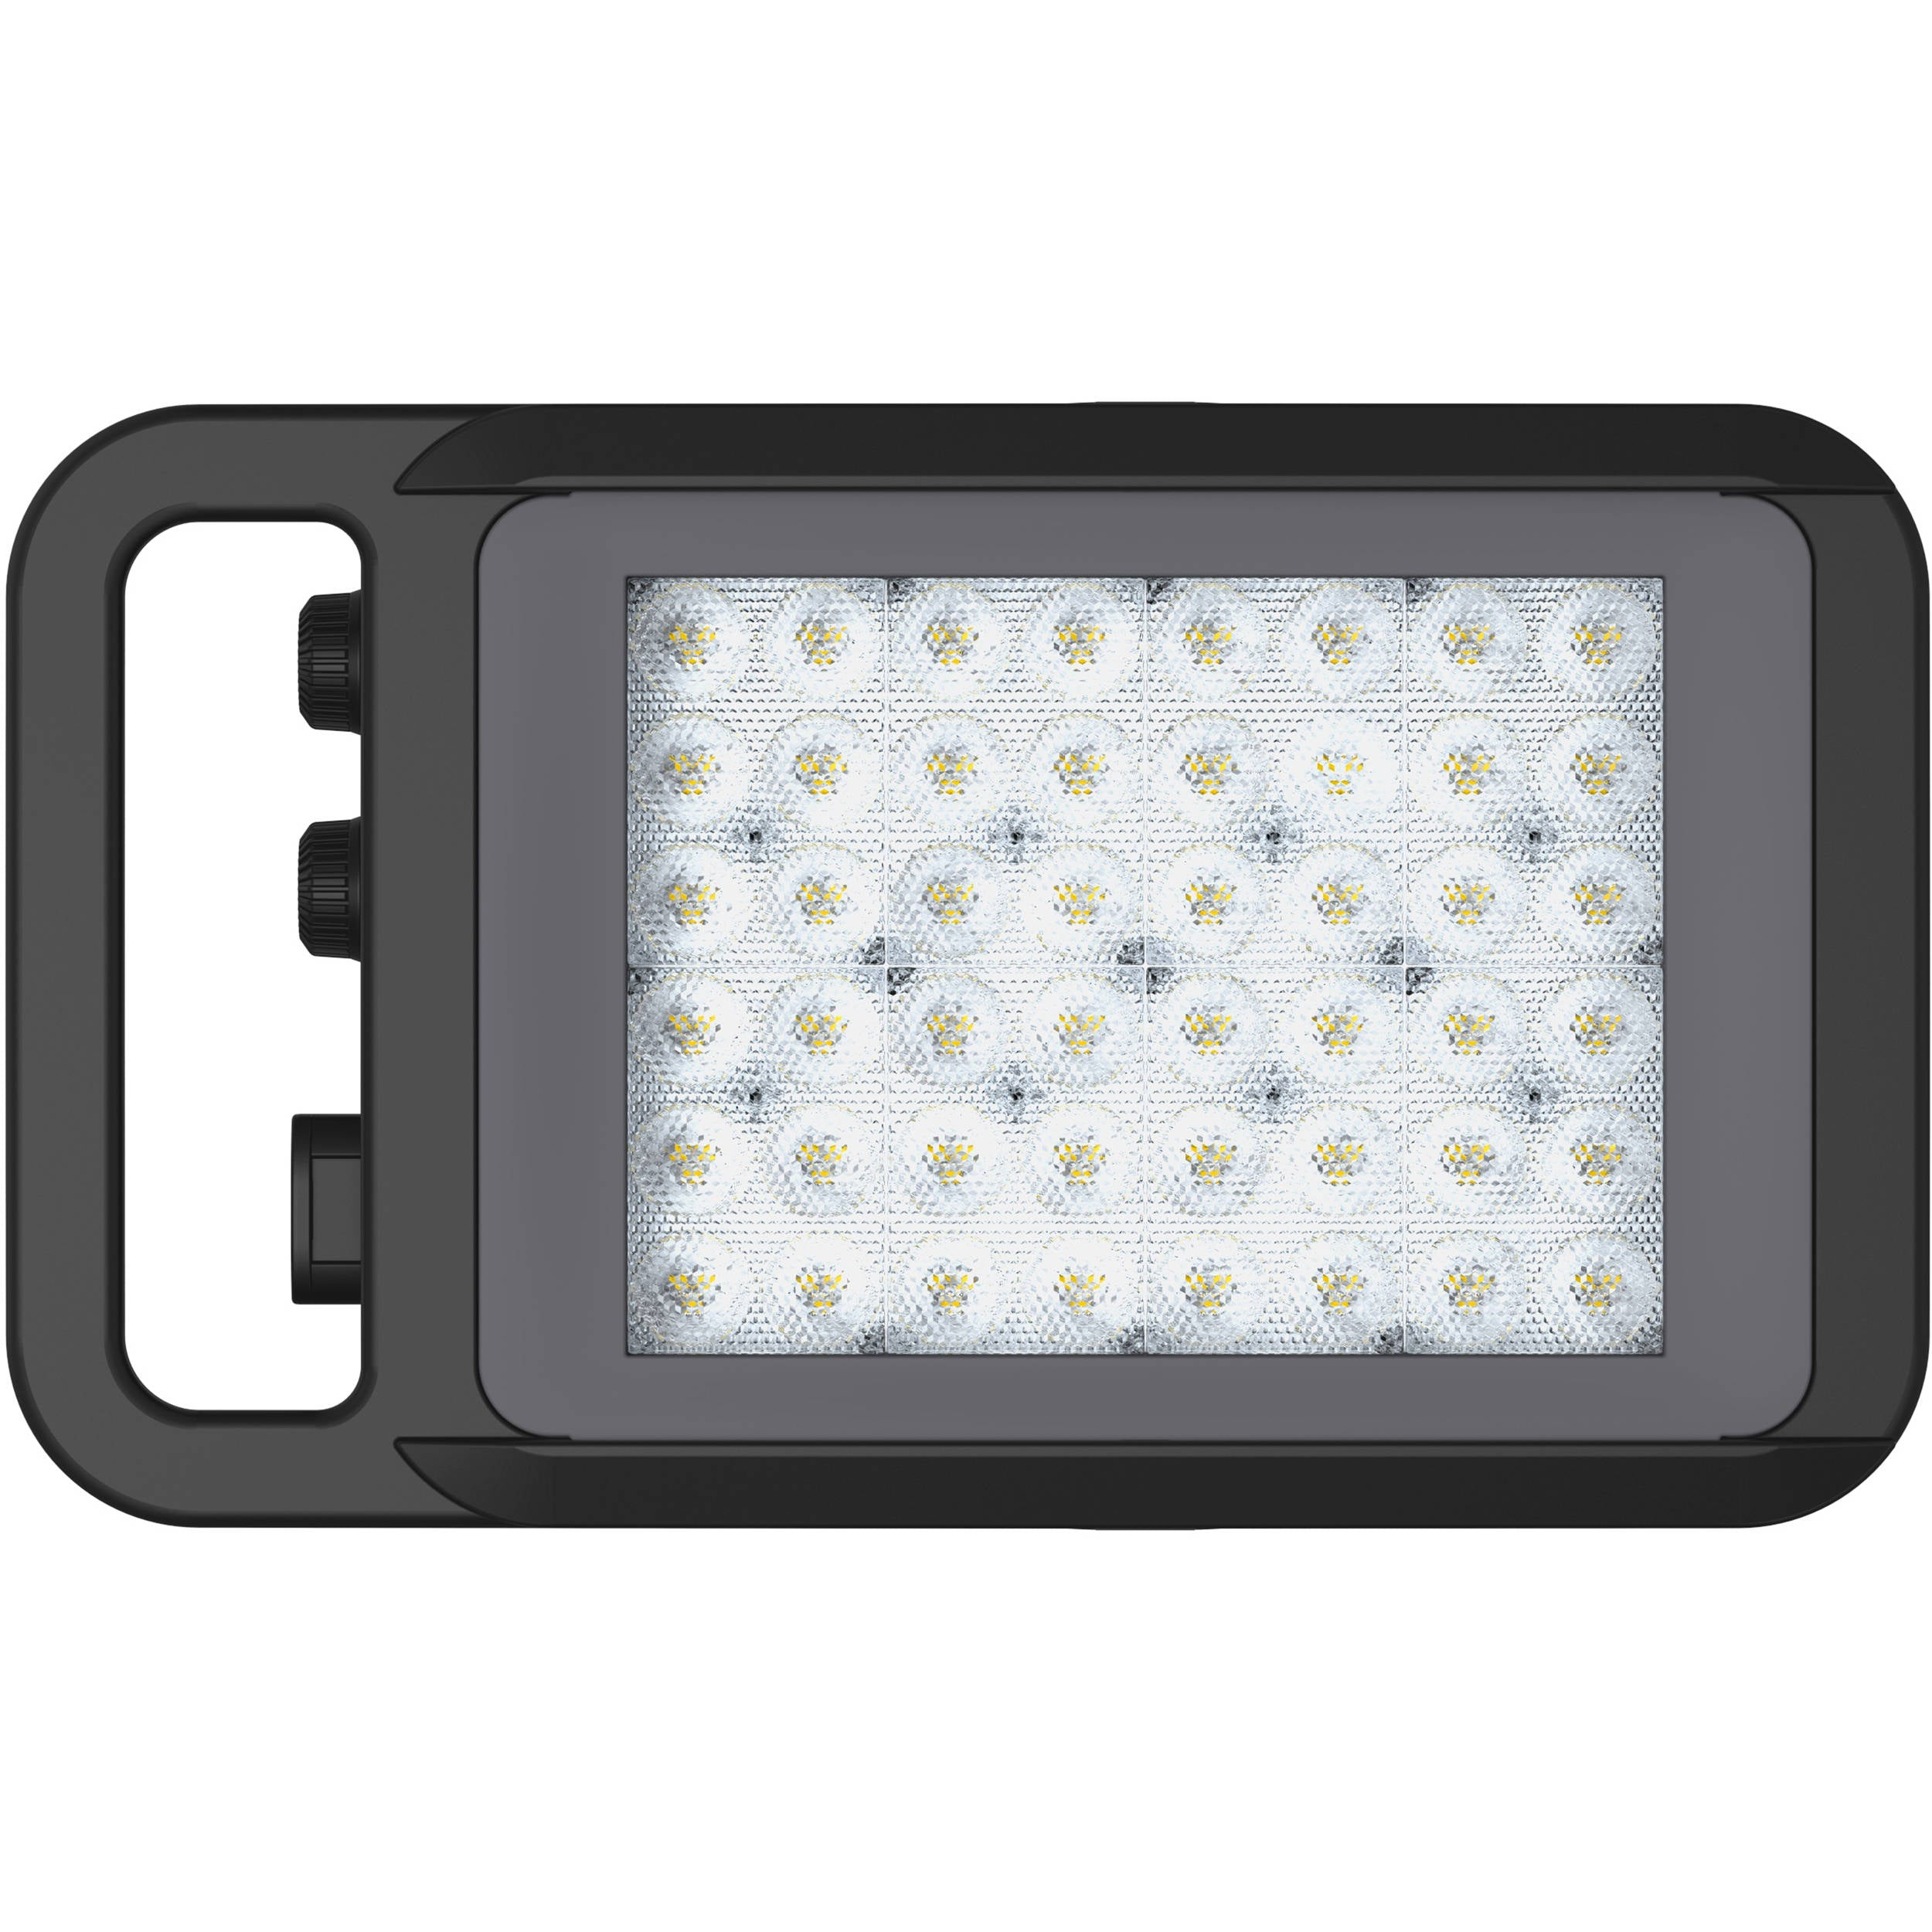 Manfrotto Lykos LED Light - BiColour